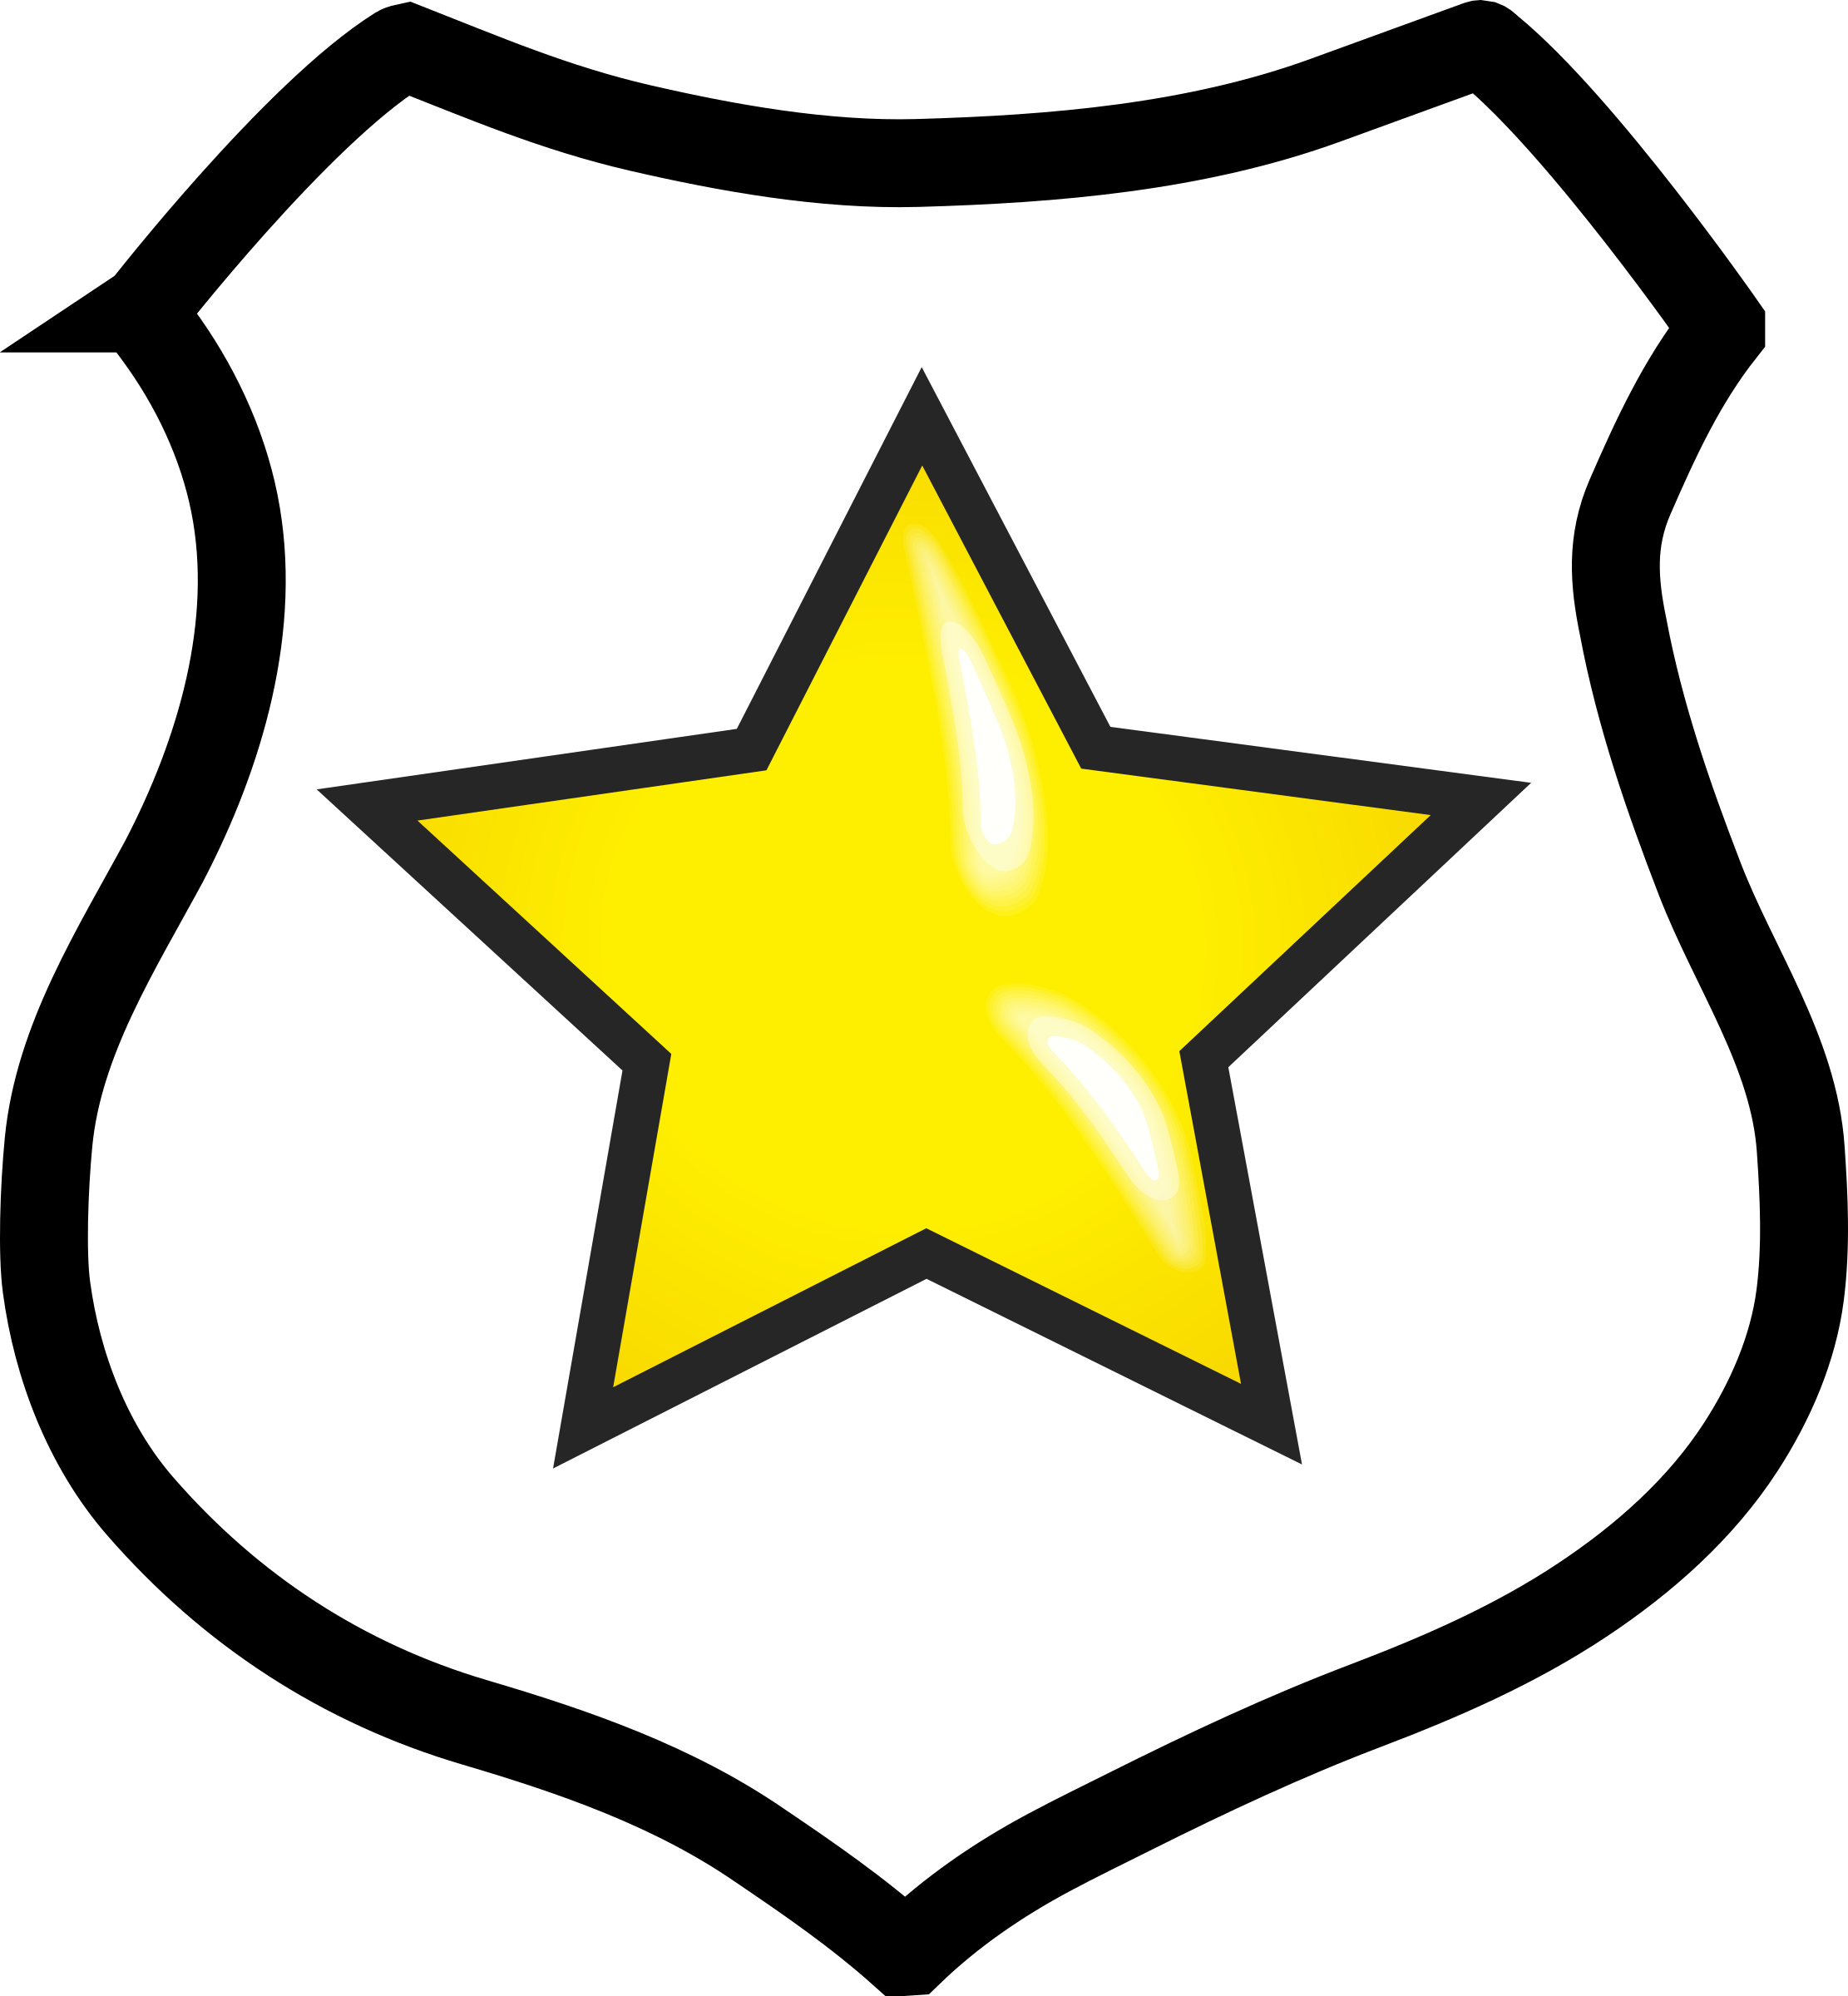 Shield with Star by Technaturally